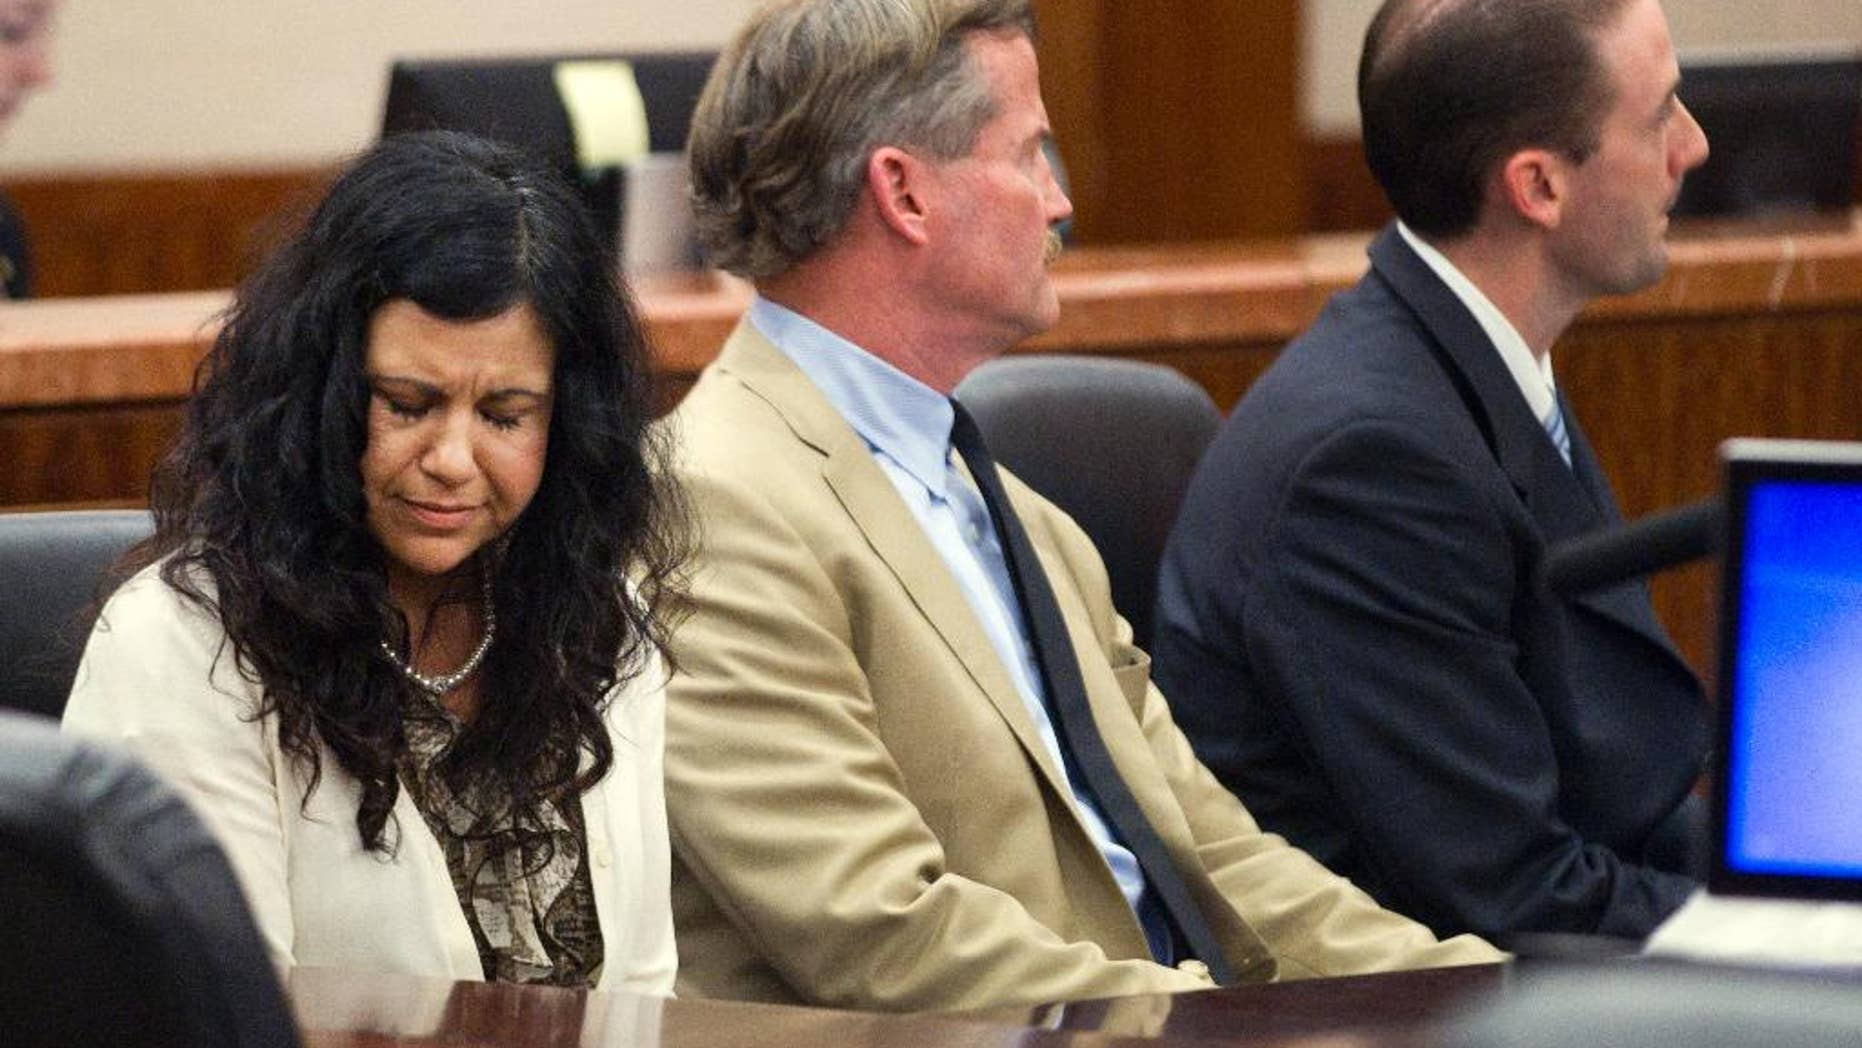 Ana Trujillo reacts after being found guilty of killing her boyfriend, after the jury deliberated less than two hours, on Tuesday, April 8, 2014, in Houston. Trujillo, 45, was found guilty of fatally stabbing her boyfriend with the stiletto heel of her shoe, hitting him at least 25 times in the face. (AP Photo/Houston Chronicle, Brett Coomer)